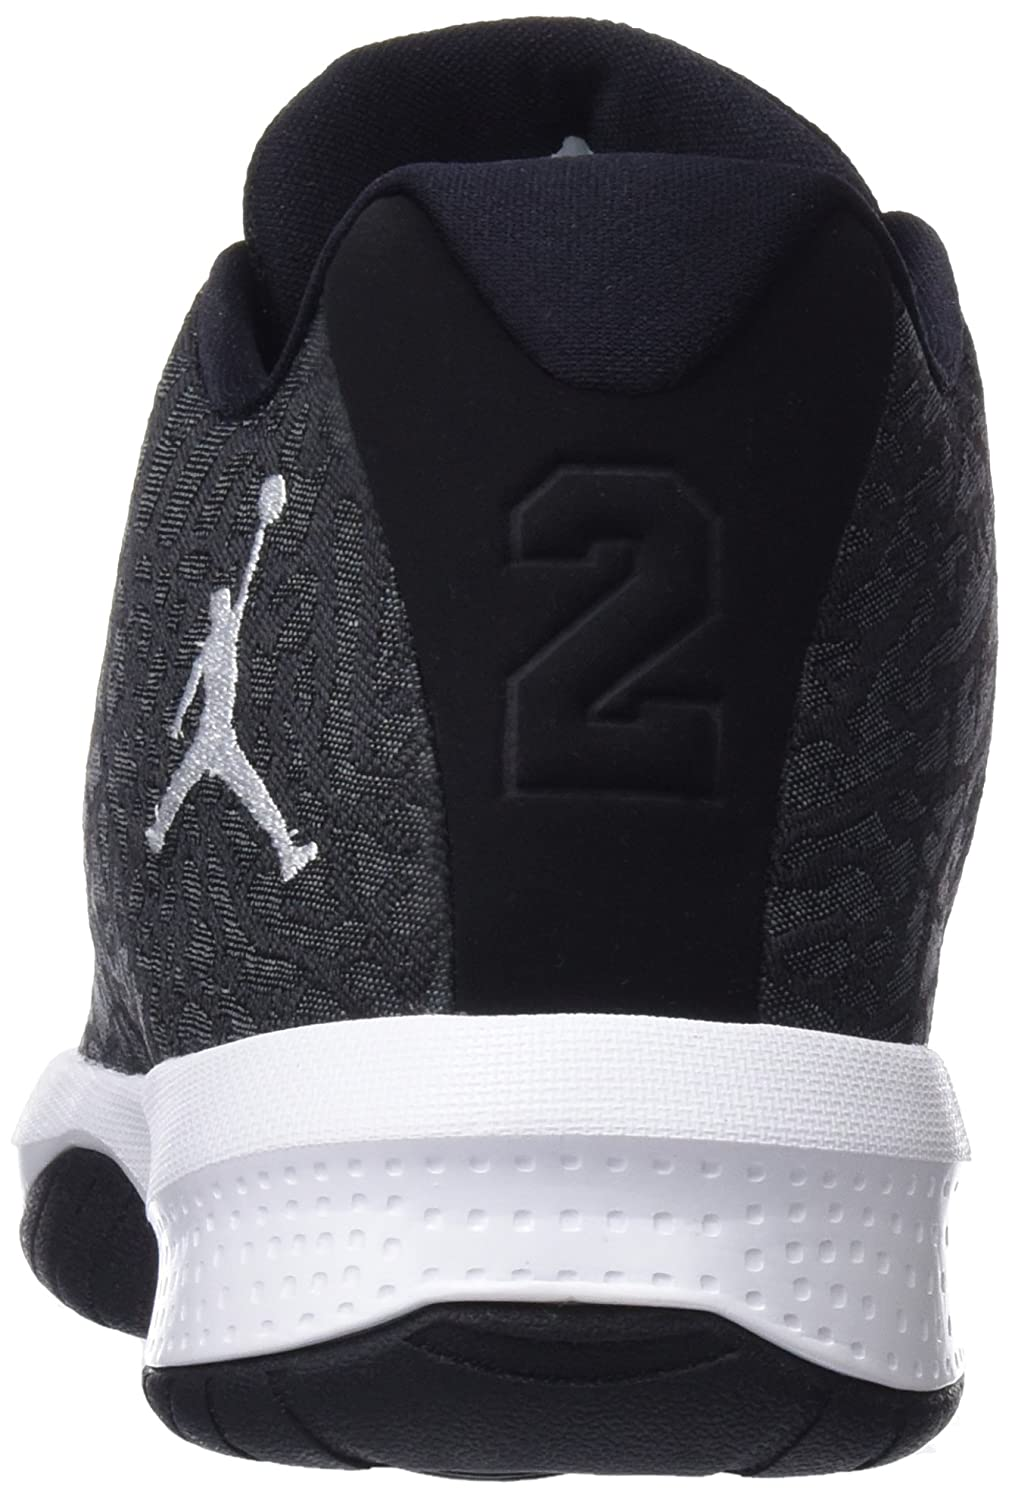 Nike Jordan B Fly Gs Nike Jordan B Fly Gs Chaussures De Basketball Xhptsuty-131240-6592722 Can Be Repeatedly Remolded. Nouvelles Chaussures